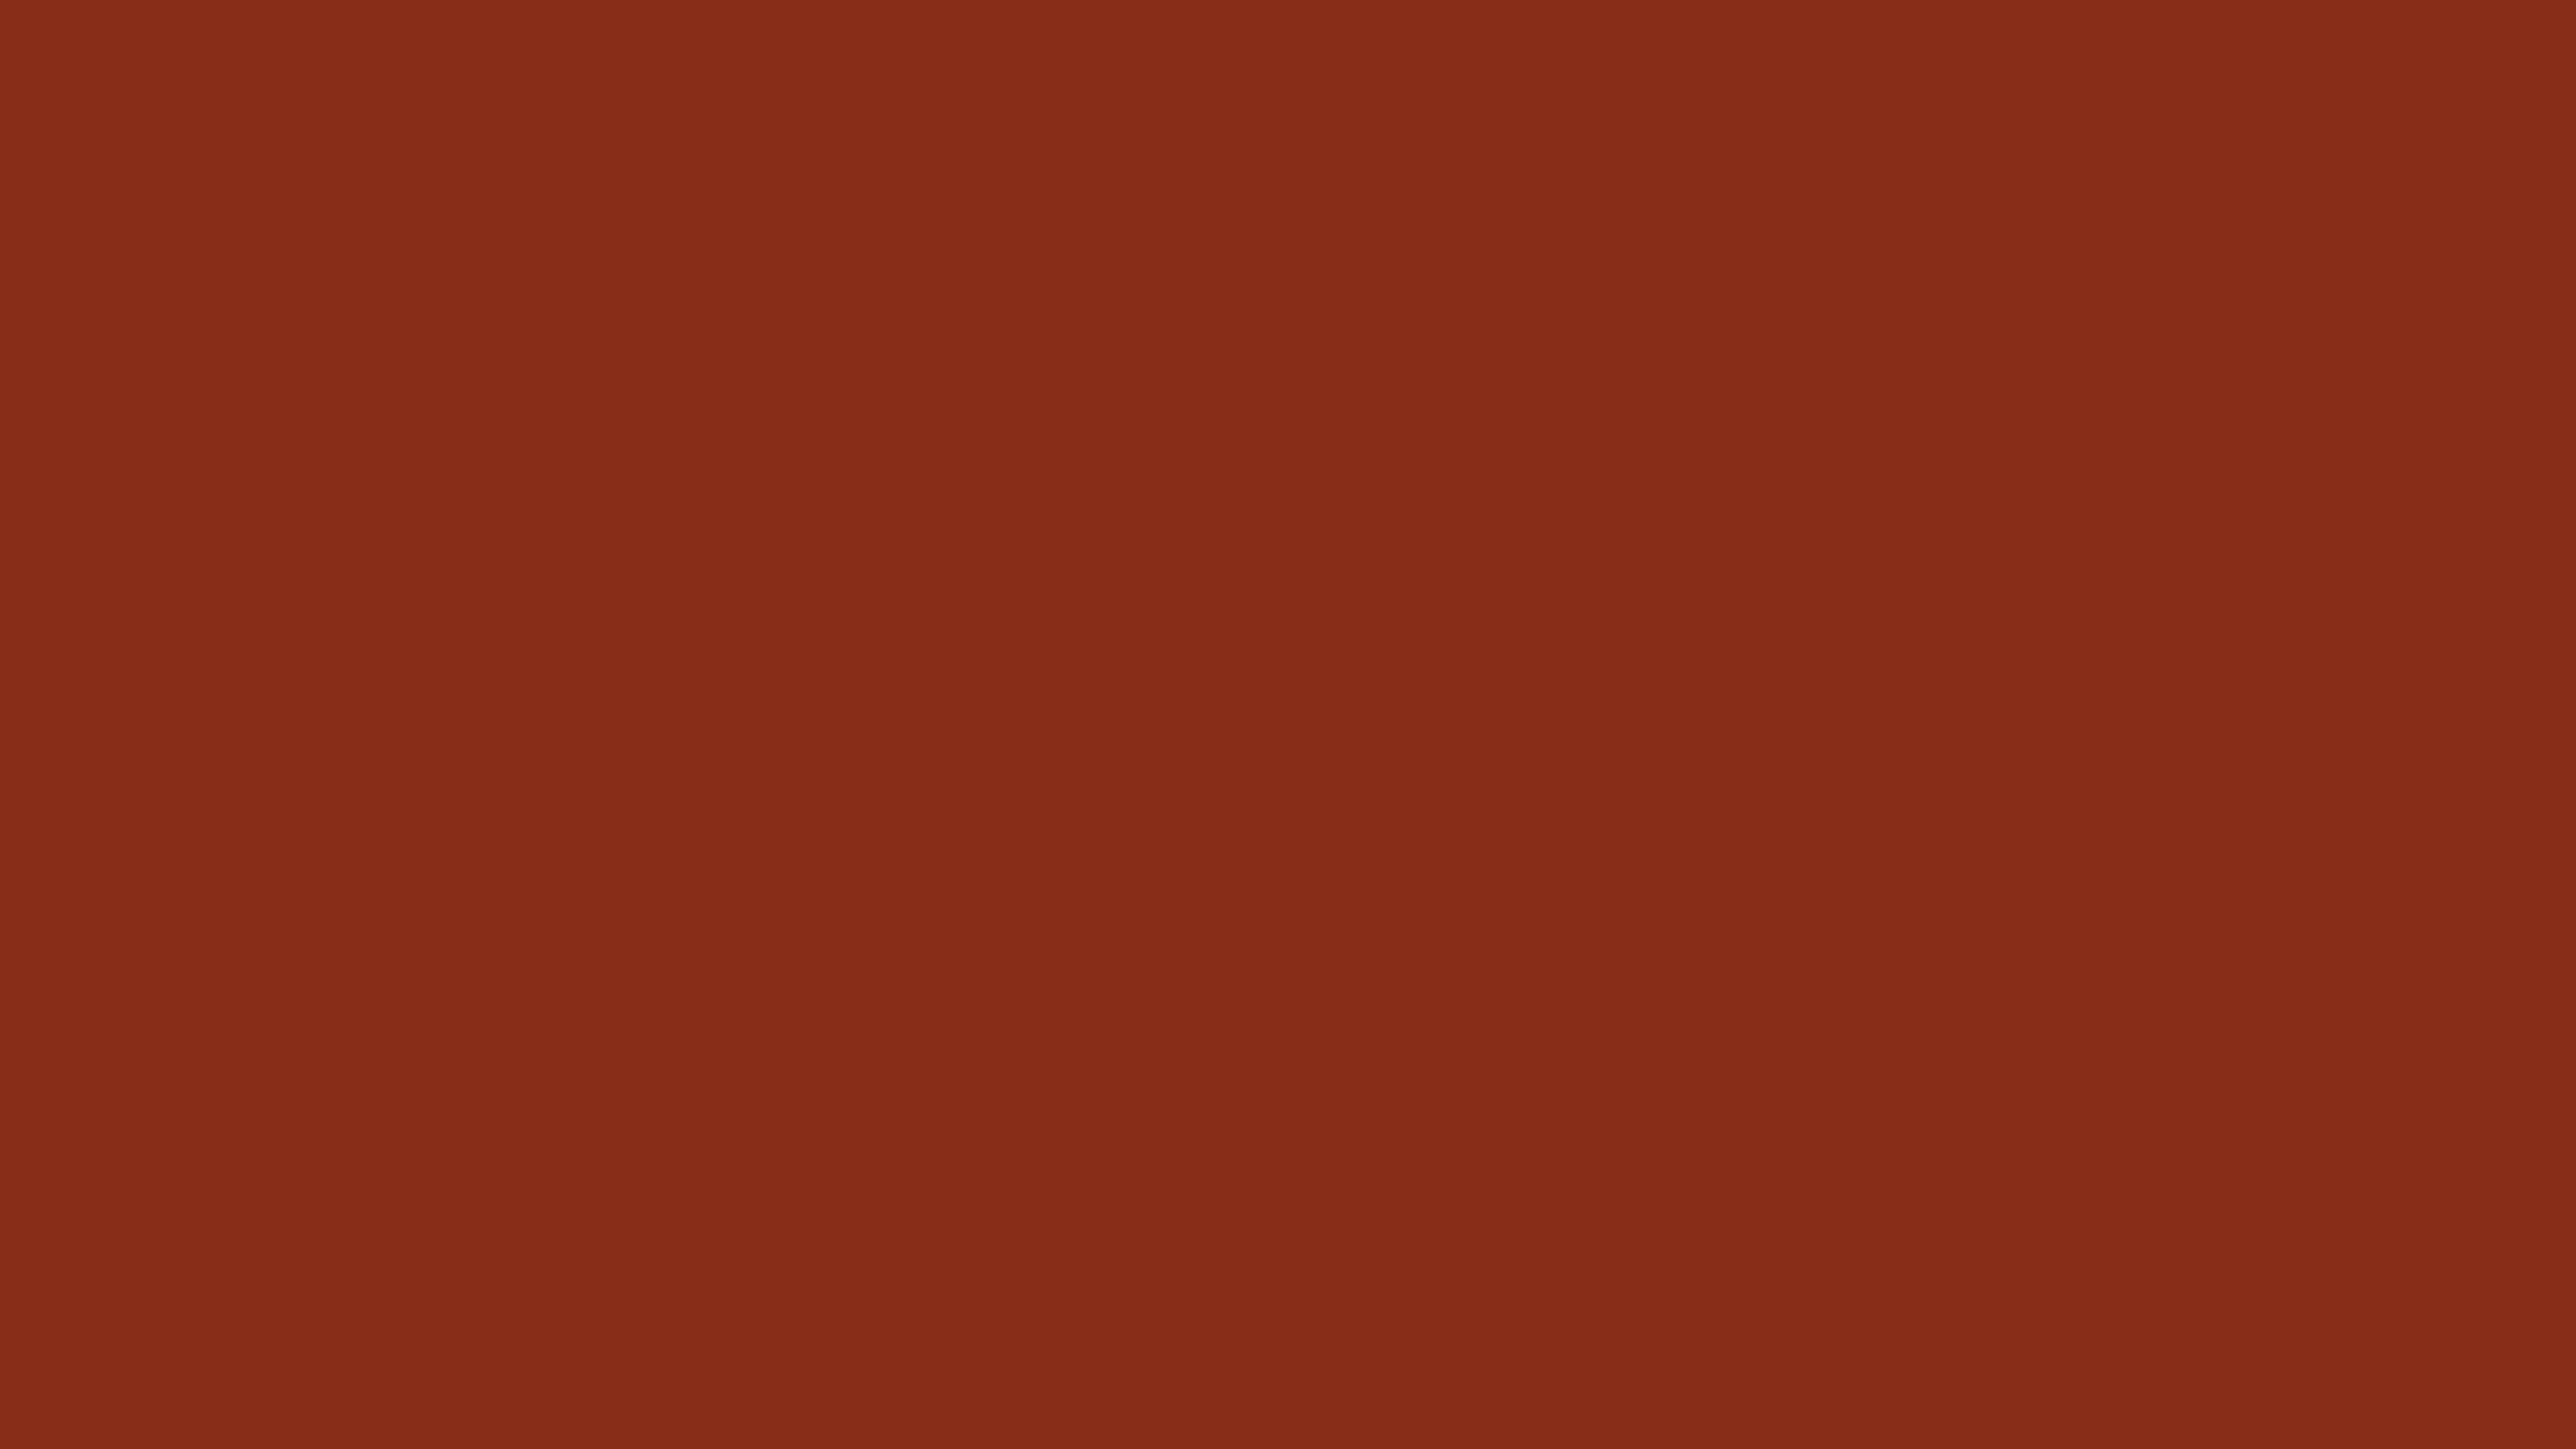 4096x2304 Sienna Solid Color Background